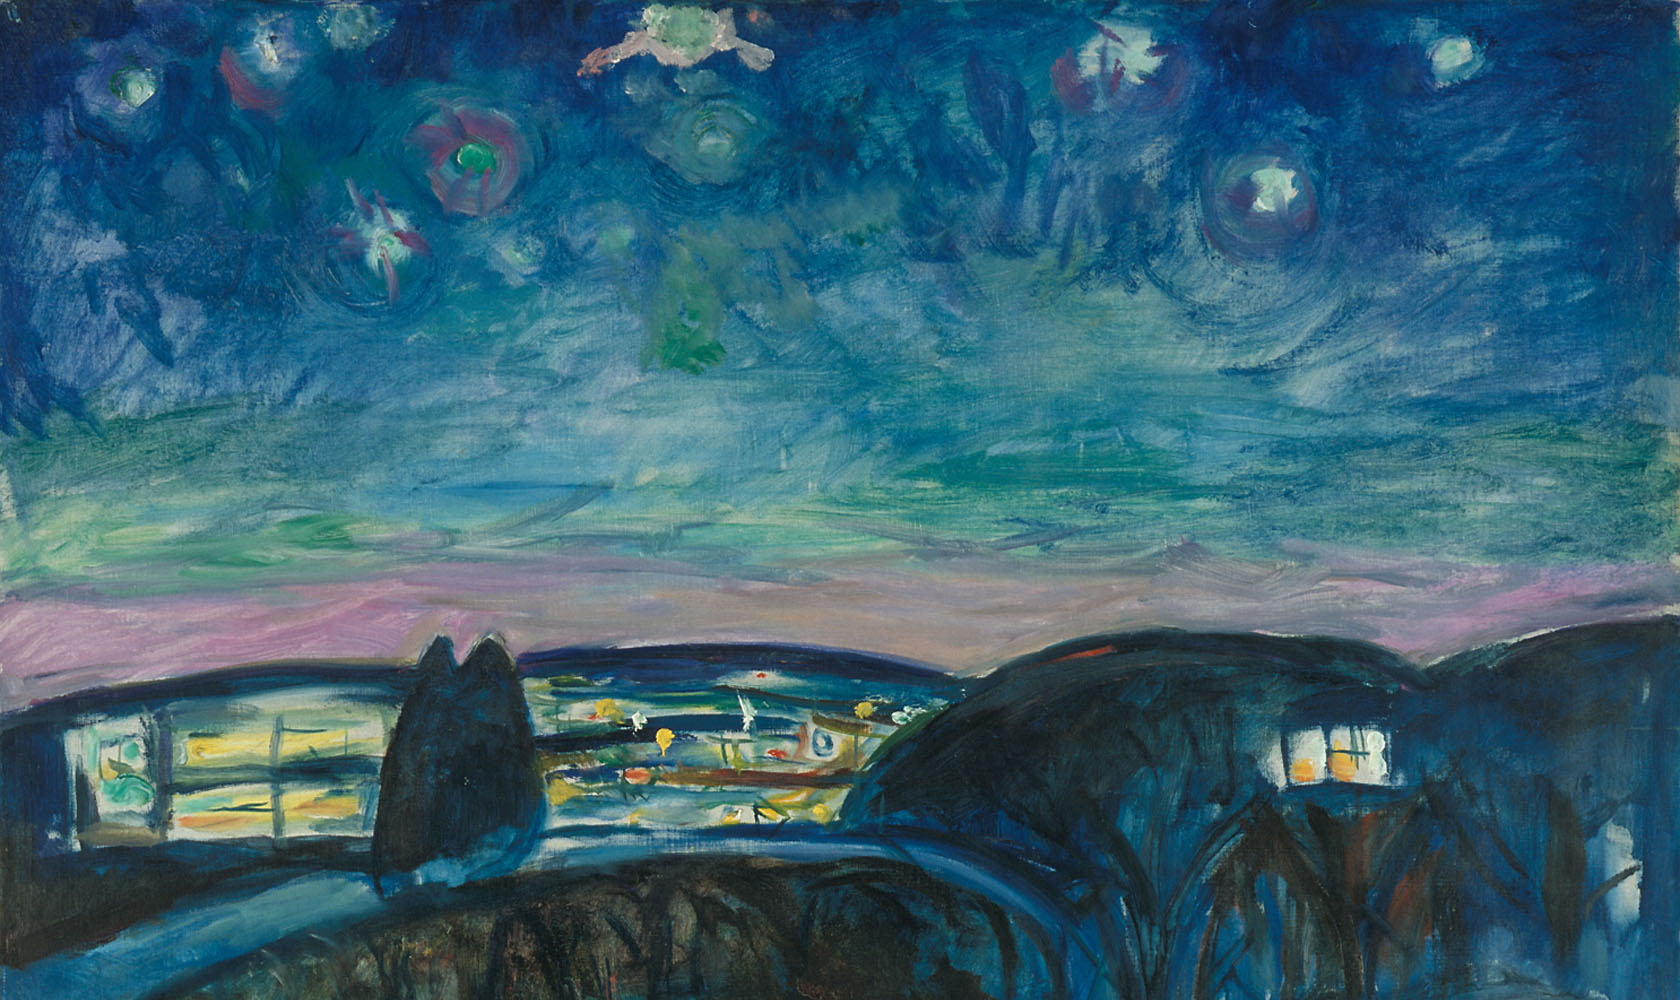 Edvard-Munch-Sterrennacht-detail-1922-Munchmuseum